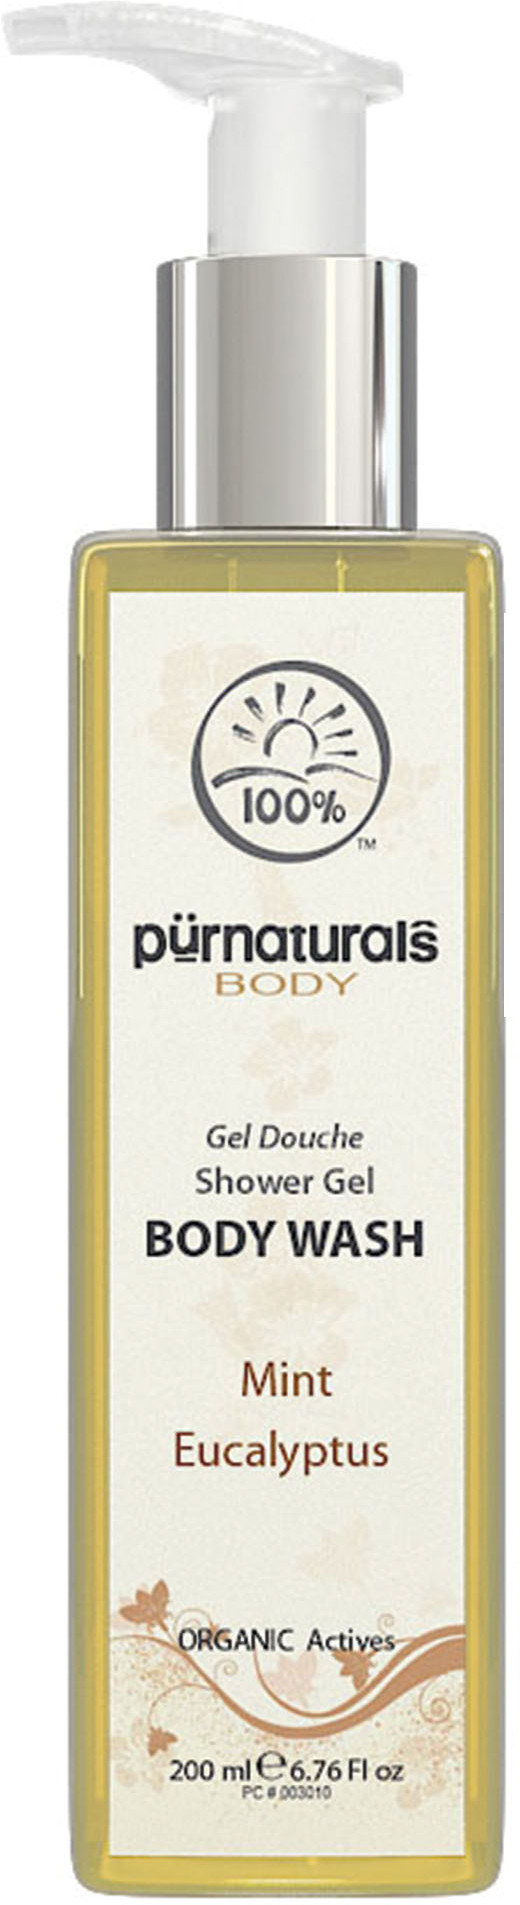 Buy Adidas Pure Game 3 In 1 Body Hair And Face Shower Gel 250ml Guaiac Wood 10 Off On Naturals Minty Wash